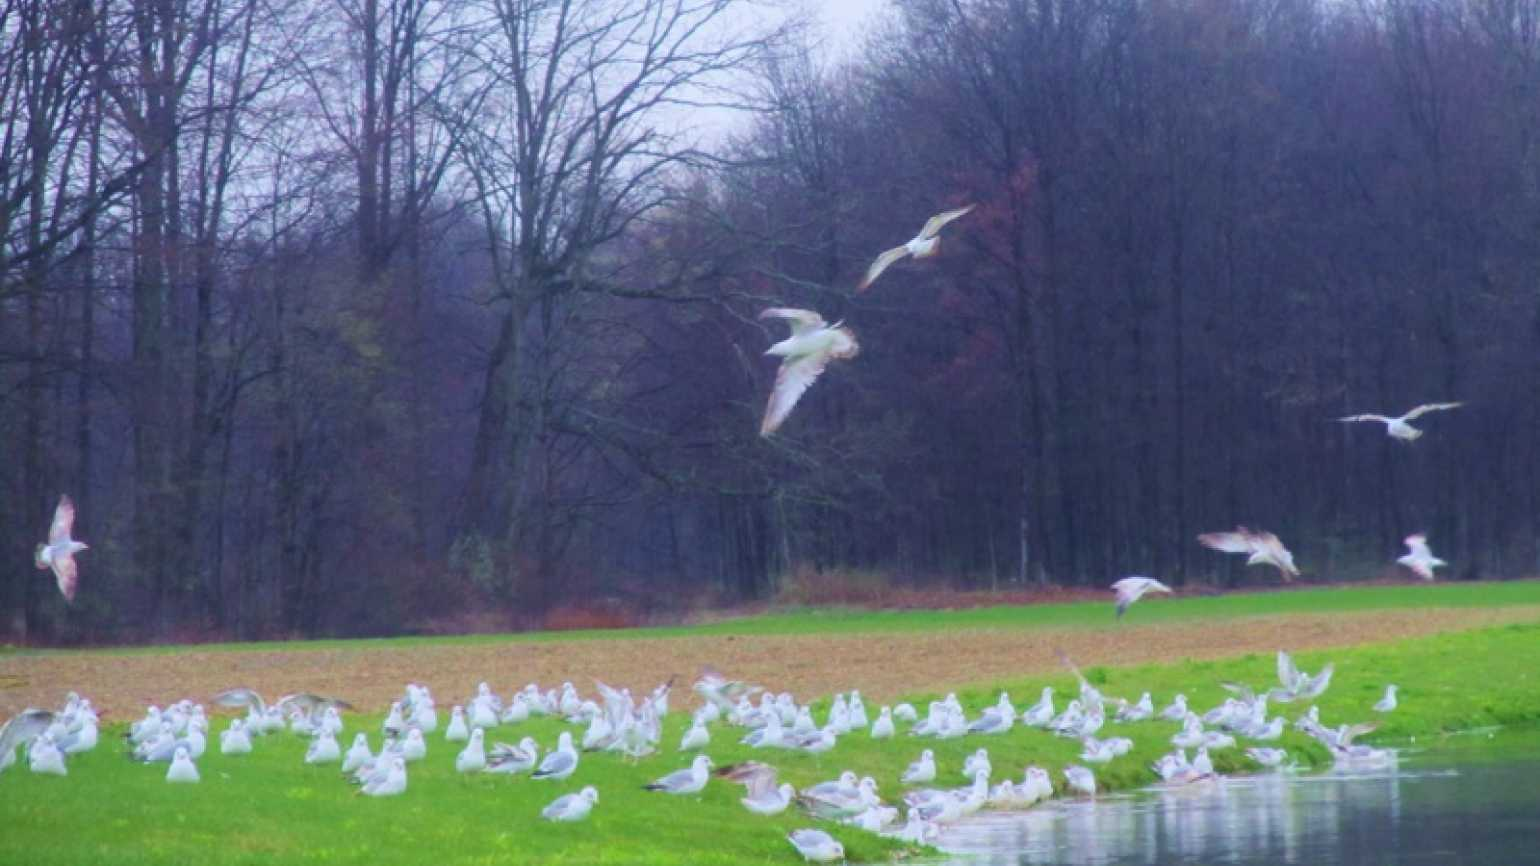 A flock of seagulls looking like angels on a rainy day